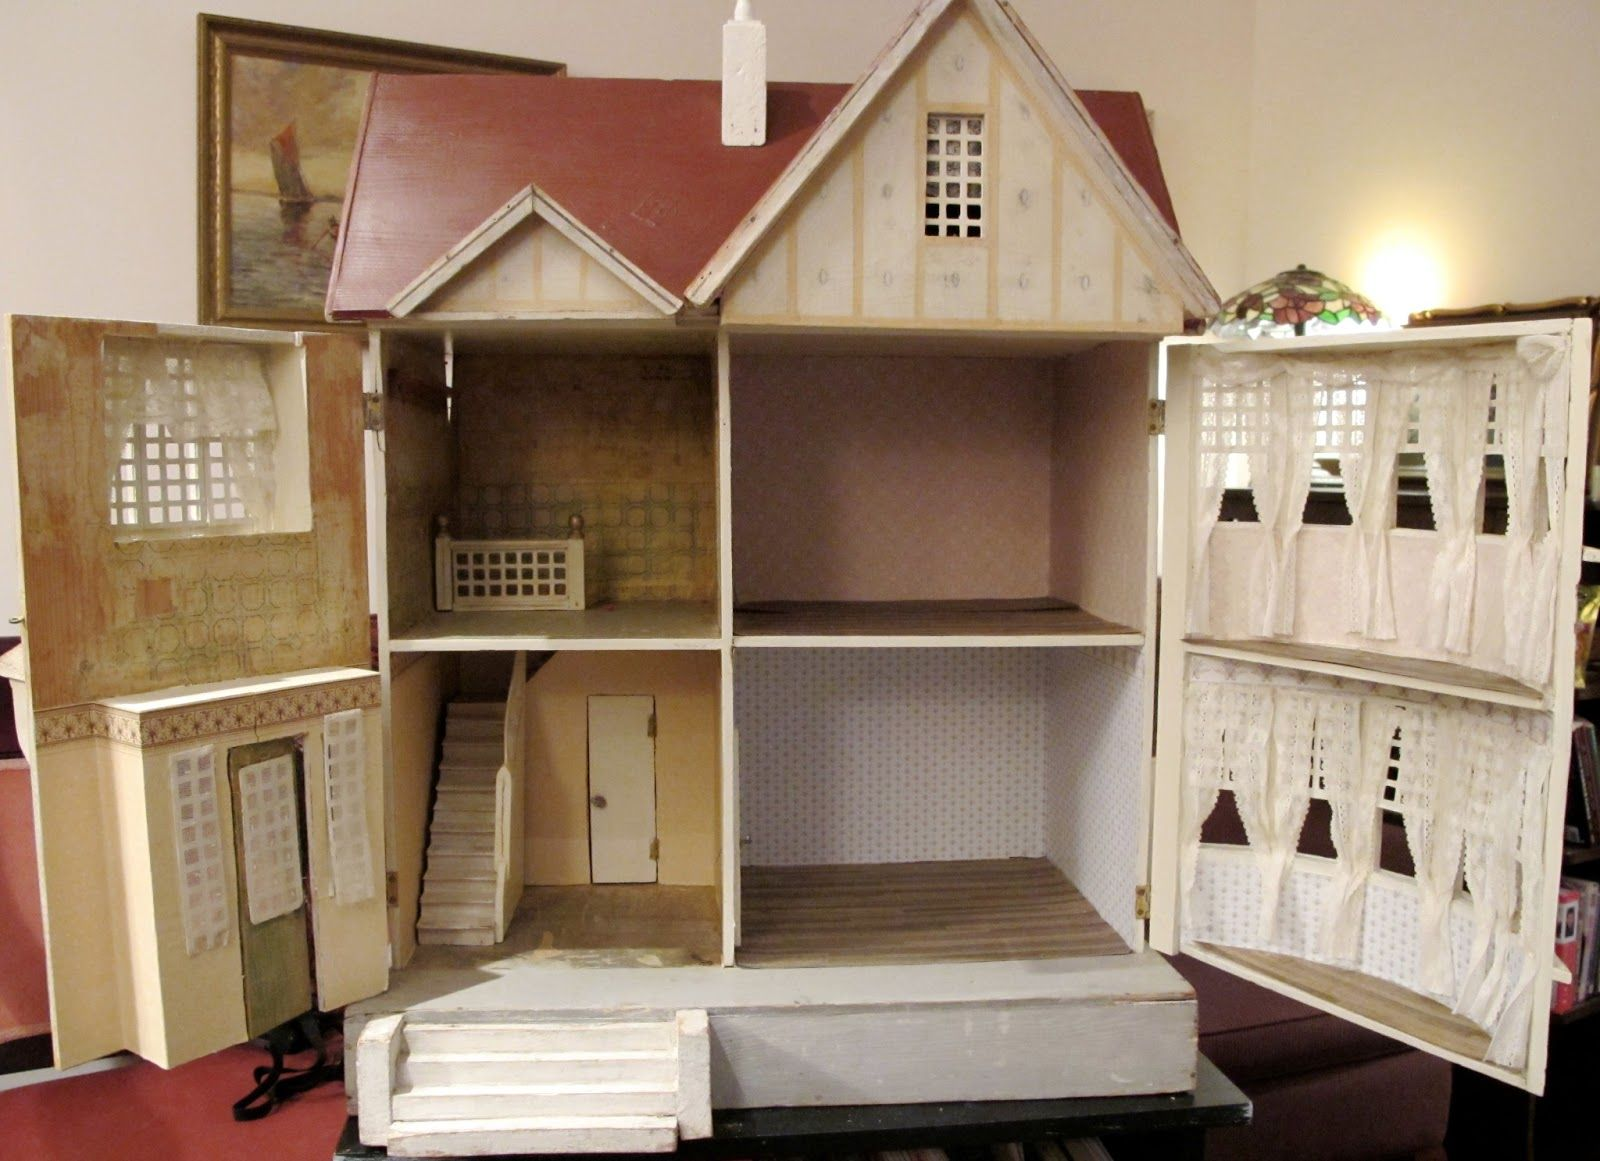 Antique Dollhouse For Sale On Craigslist Google Search Mini Homeshouse Accessoriesantique